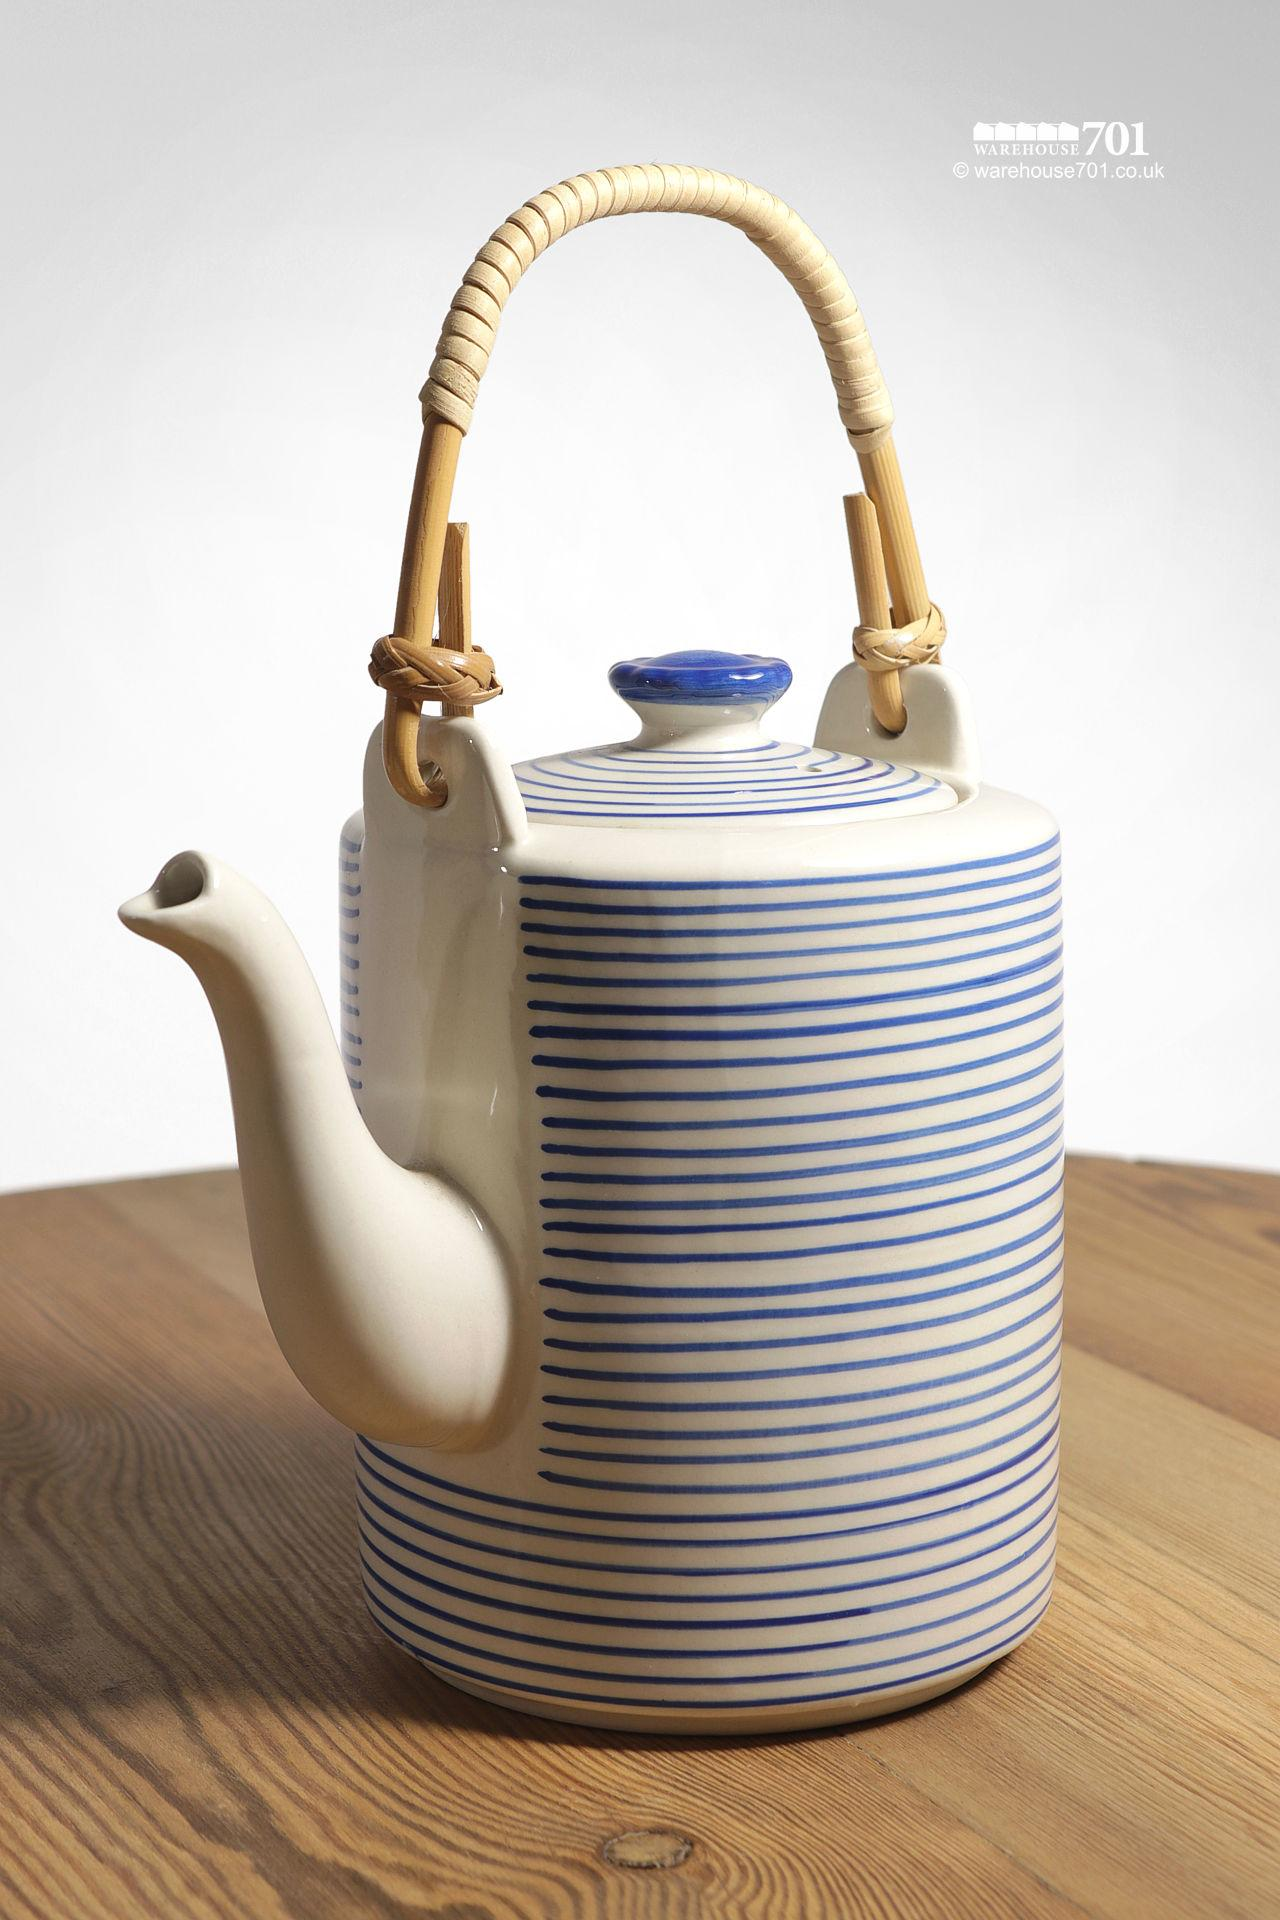 Blue and White Banded Ceramic Teapot with a Woven Bamboo Handle #1